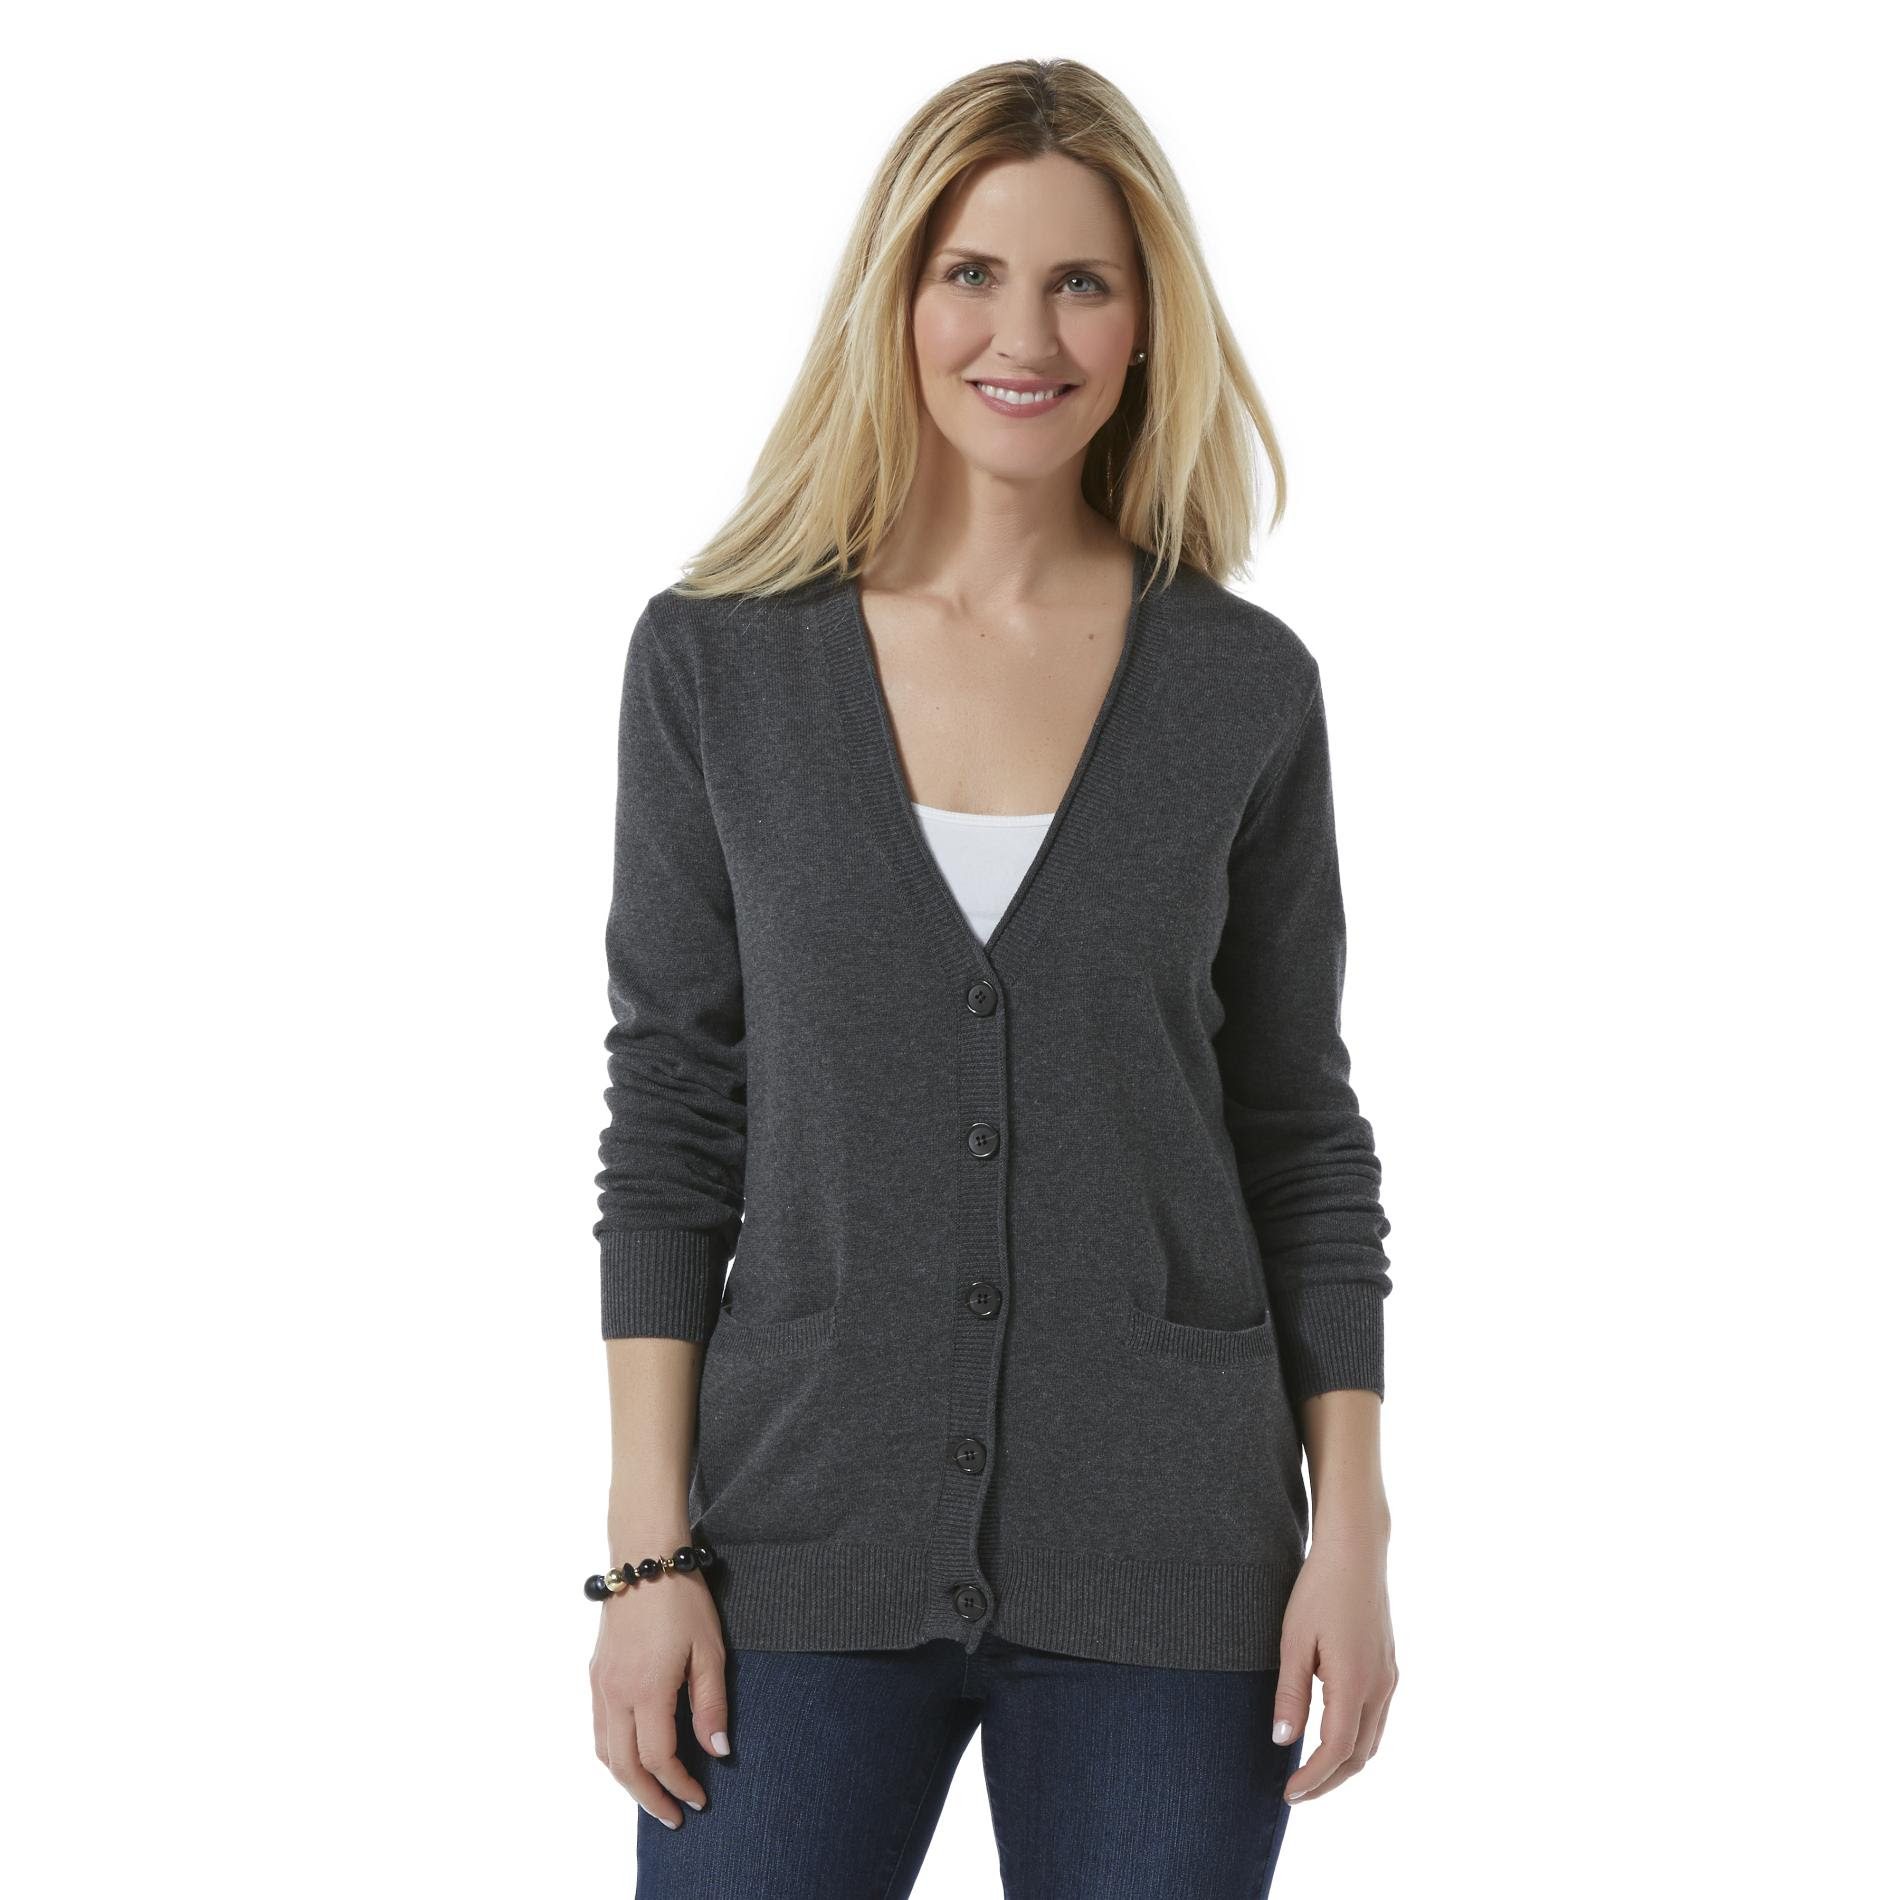 River island clothing boyfriend jcpenney cardigans women at for